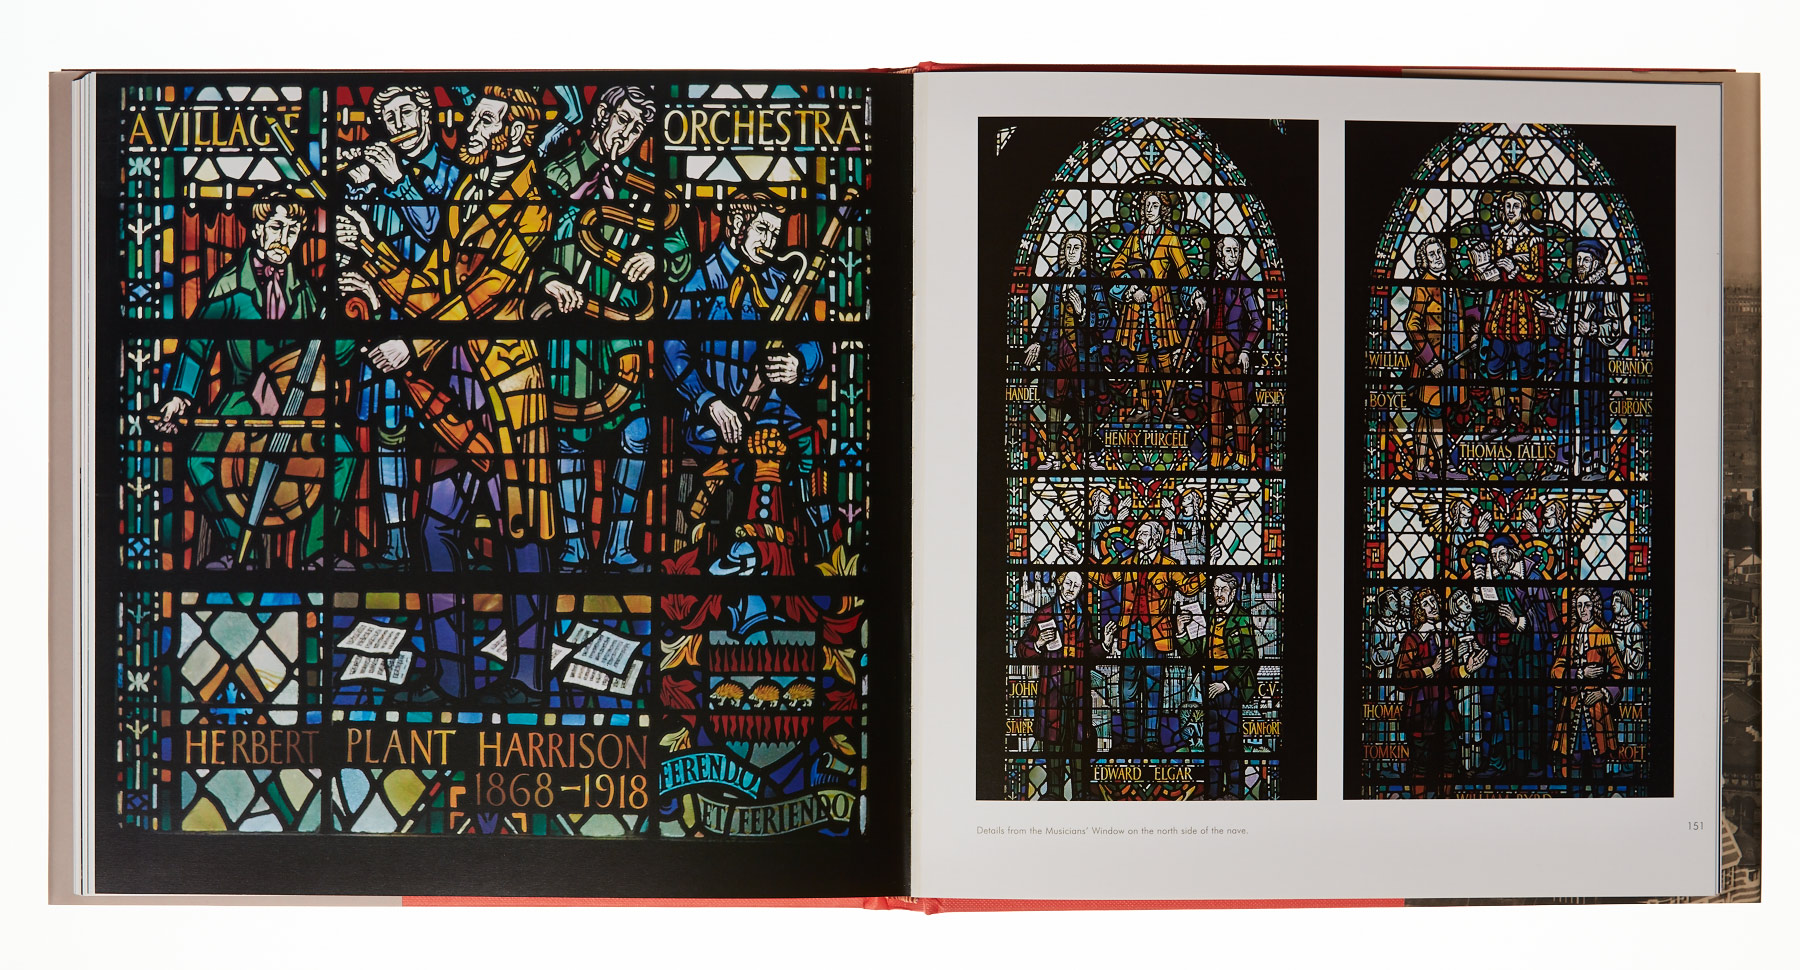 liverpool-cathedral-book-page-150.jpg